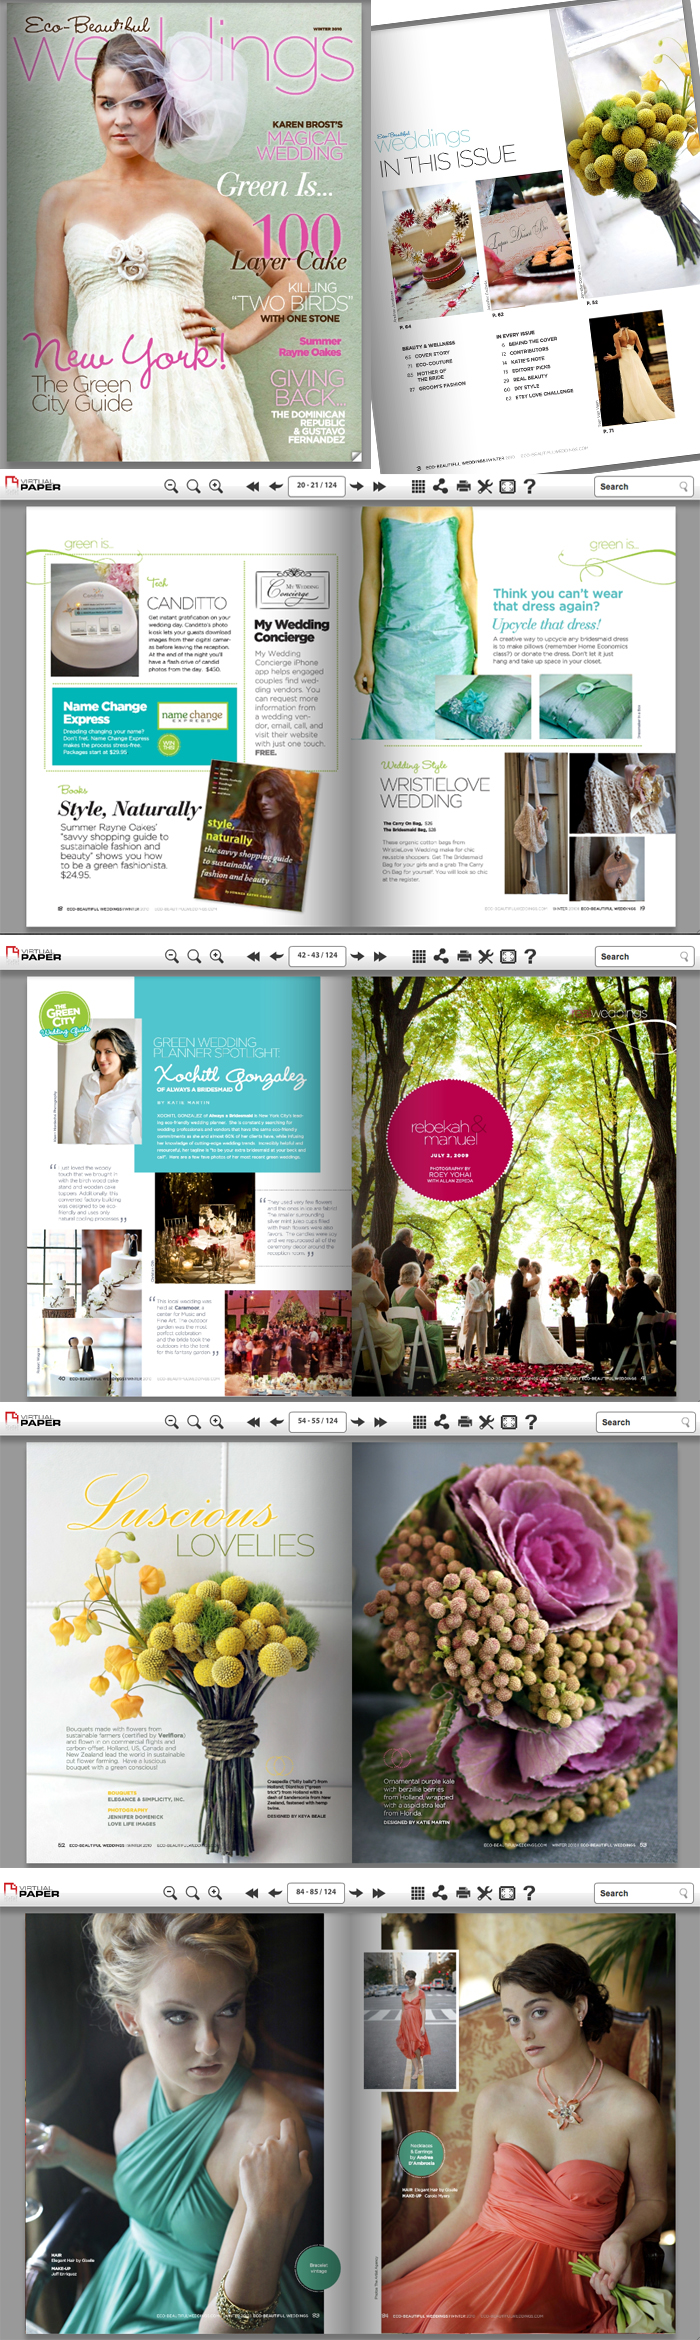 Eco Weddings Ezine